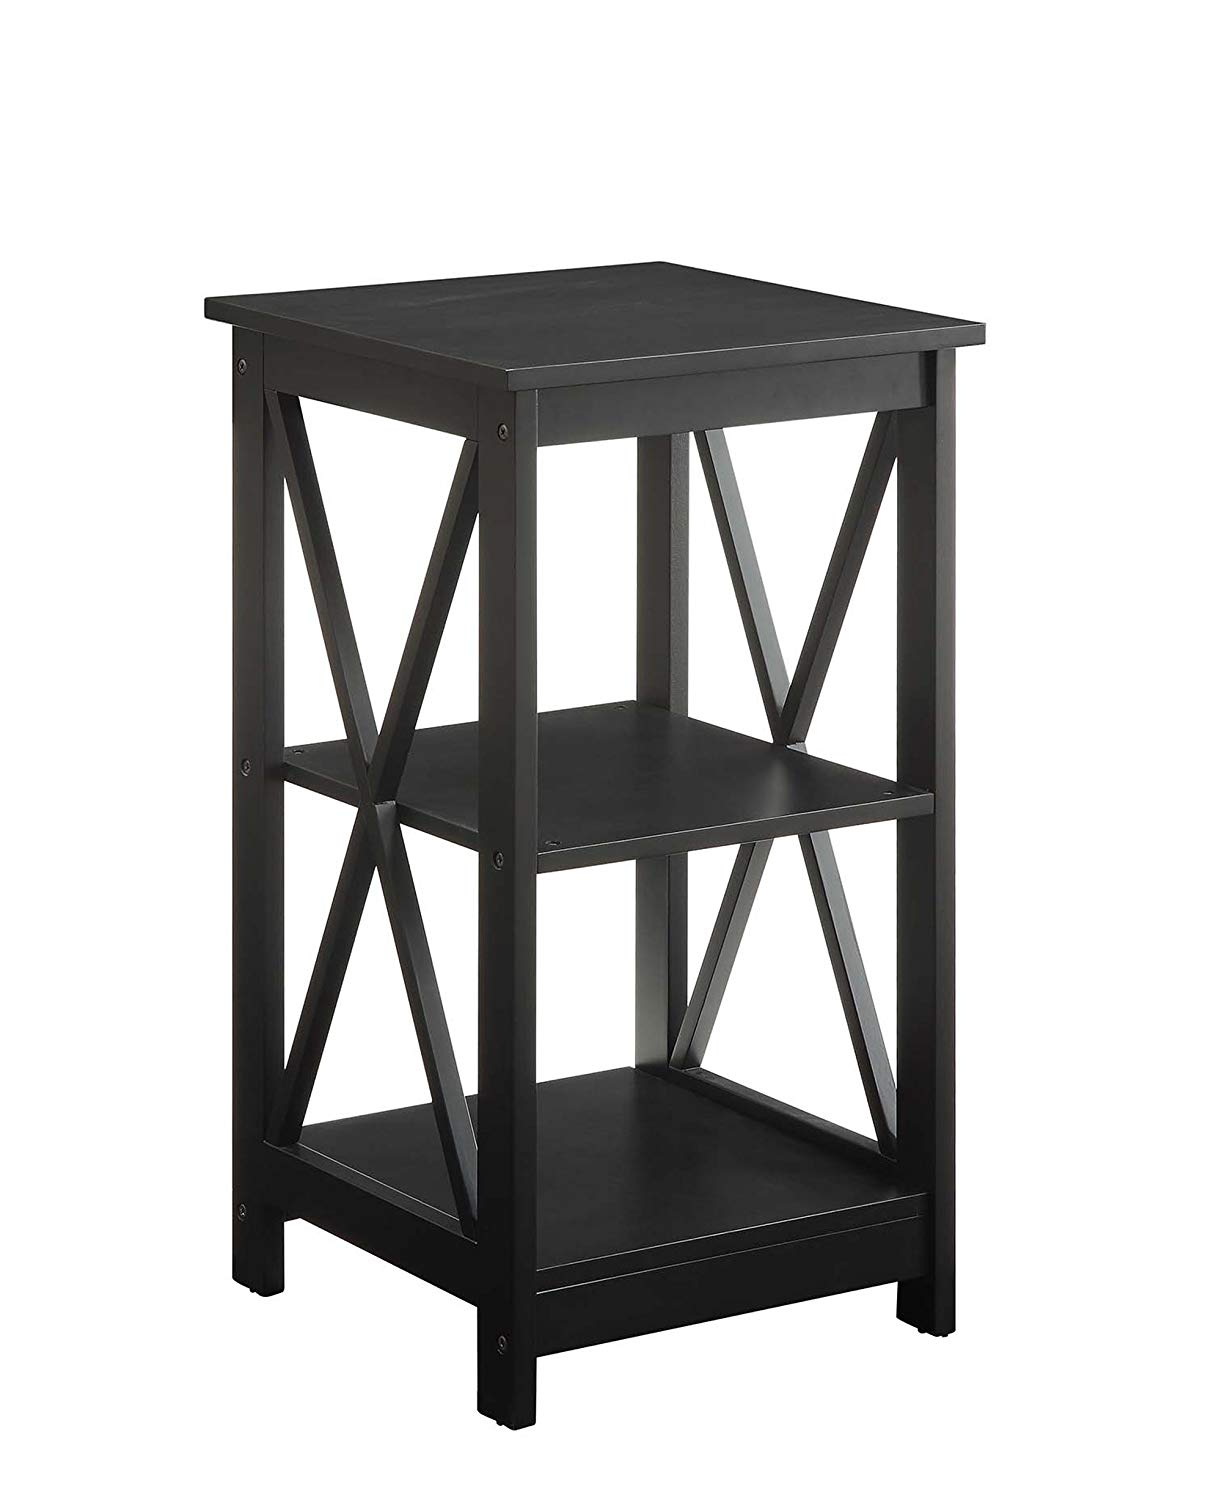 convenience concepts oxford end table black kitchen espresso dining million calendar bedroom furniture ashley stewart business hours jysk coffee allen shabby chic painted accent